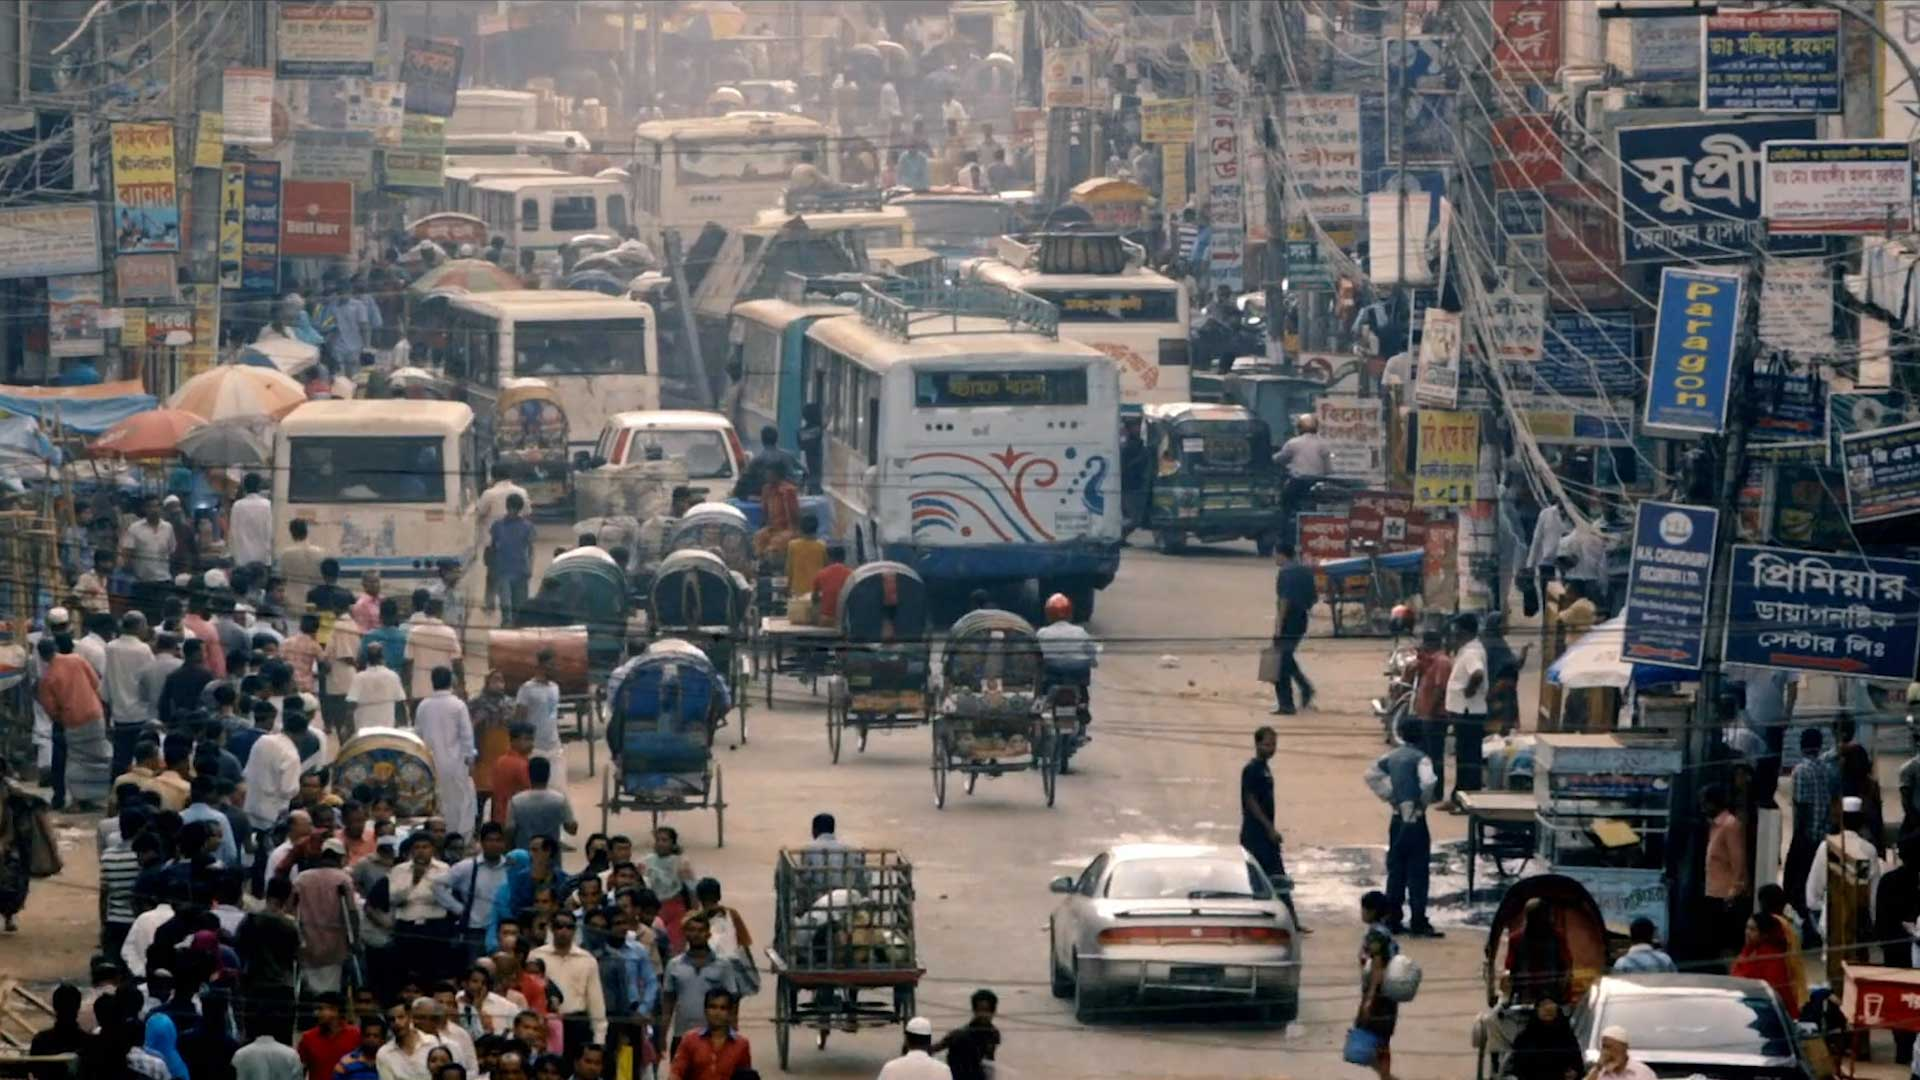 busy street with cars and pedestrians in India